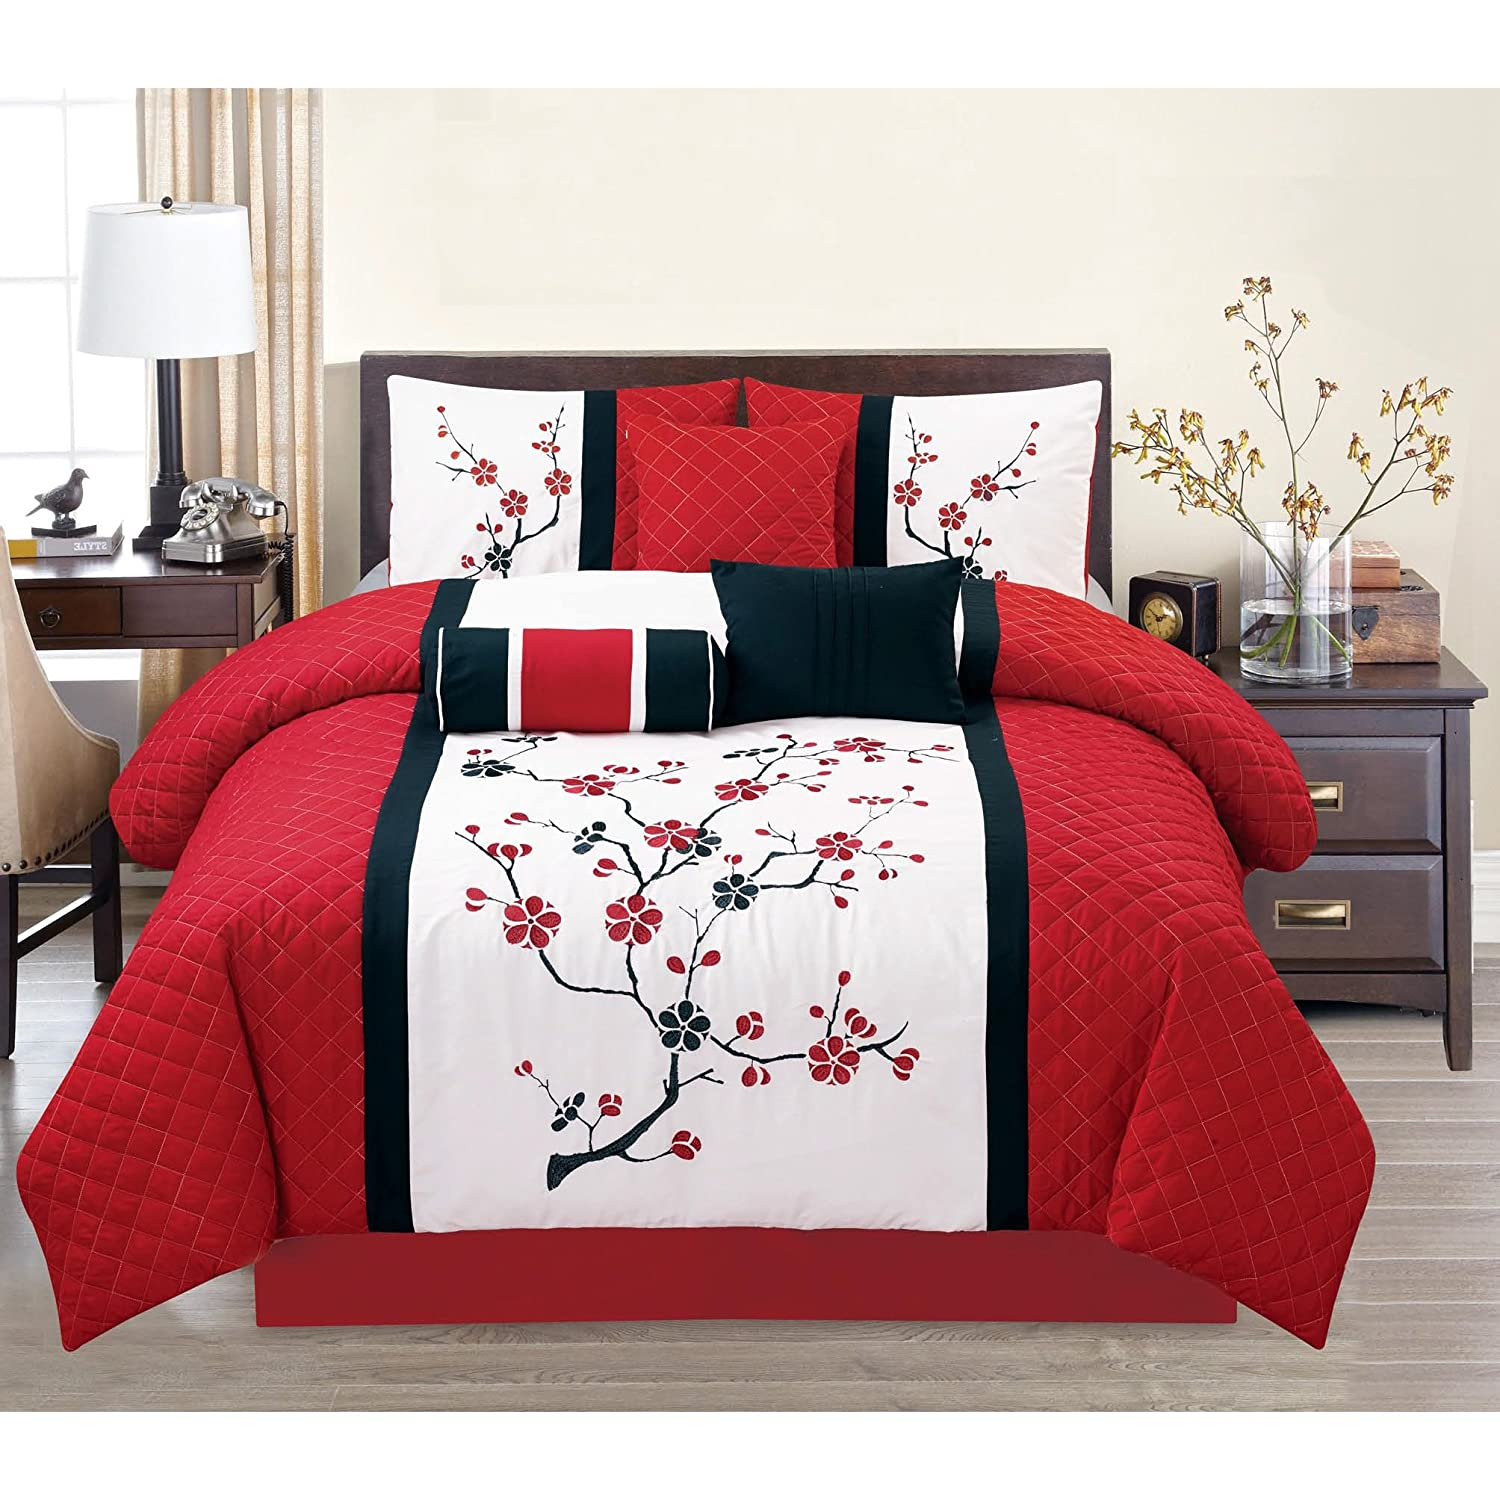 7 Piece Embroidered Floral Patterned Comforter Set `King Size, Featuring  Precious Dainty Asian Cherry Blossoms Themed Bedding, Nature lover Design,  ...